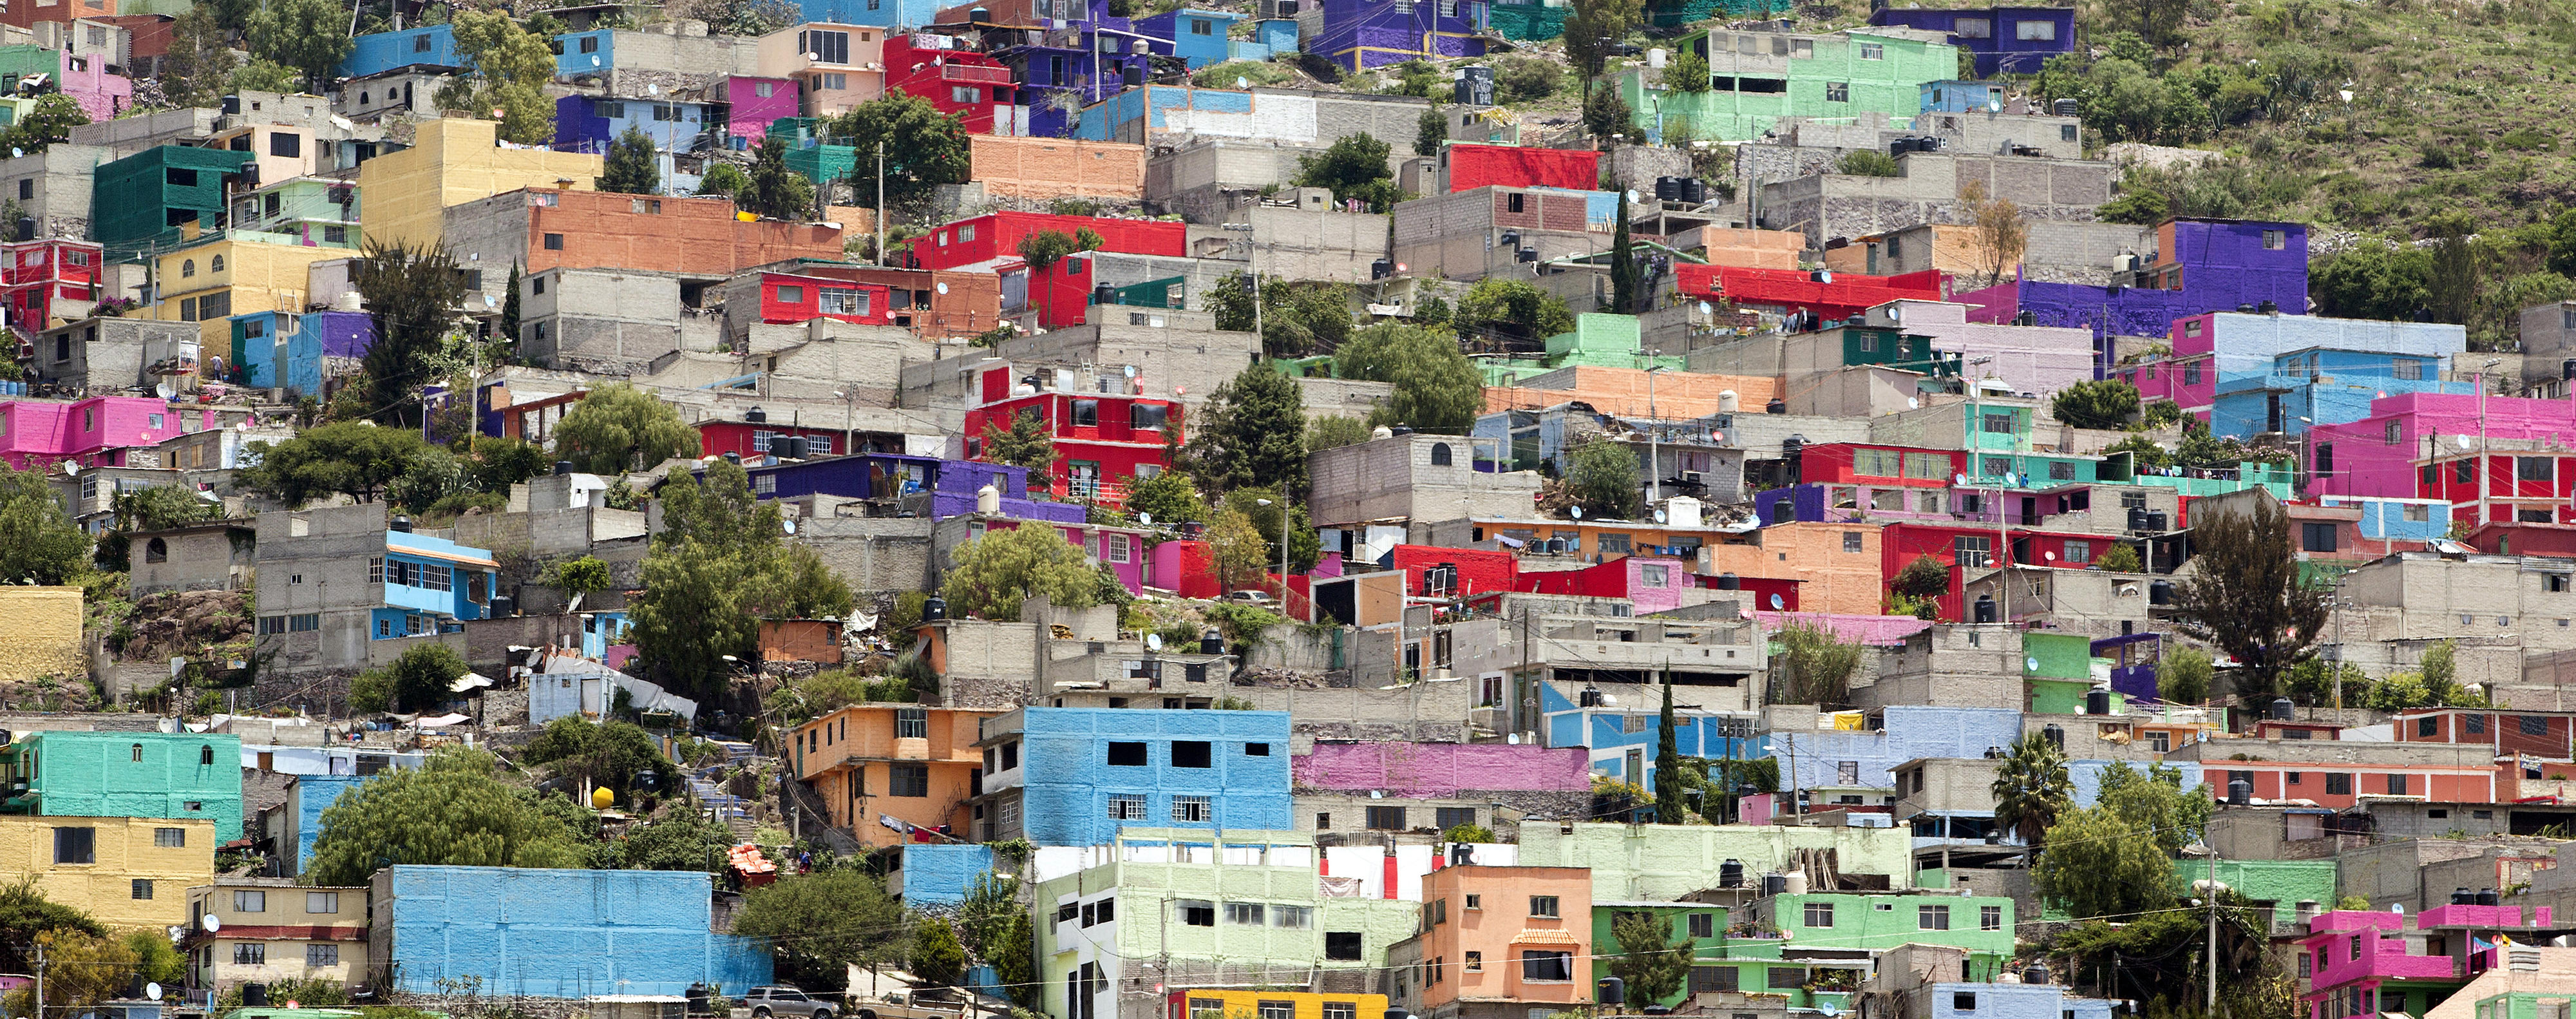 Colorful houses in a suburb of Mexico City